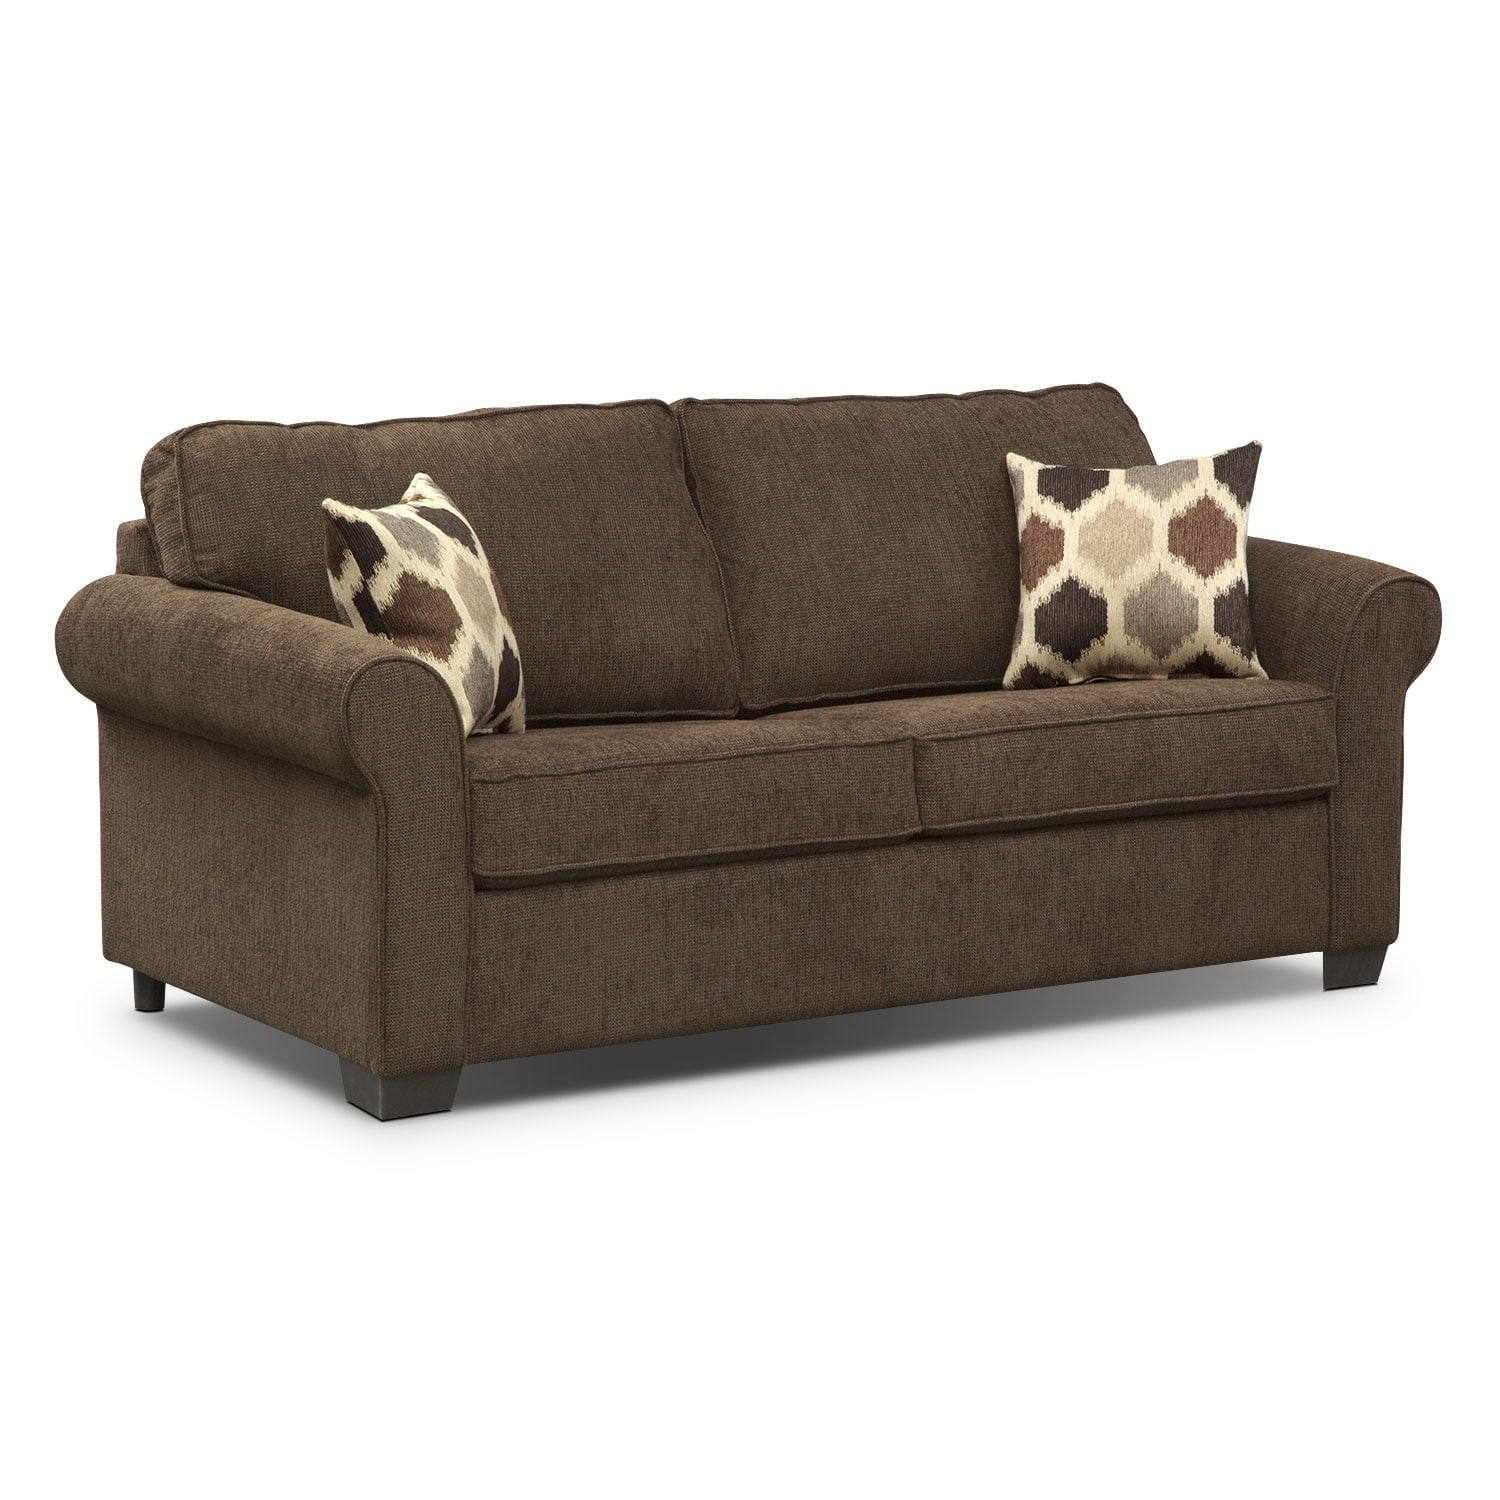 Fletcher Ii Queen Memory Foam Sleeper Sofa Value City